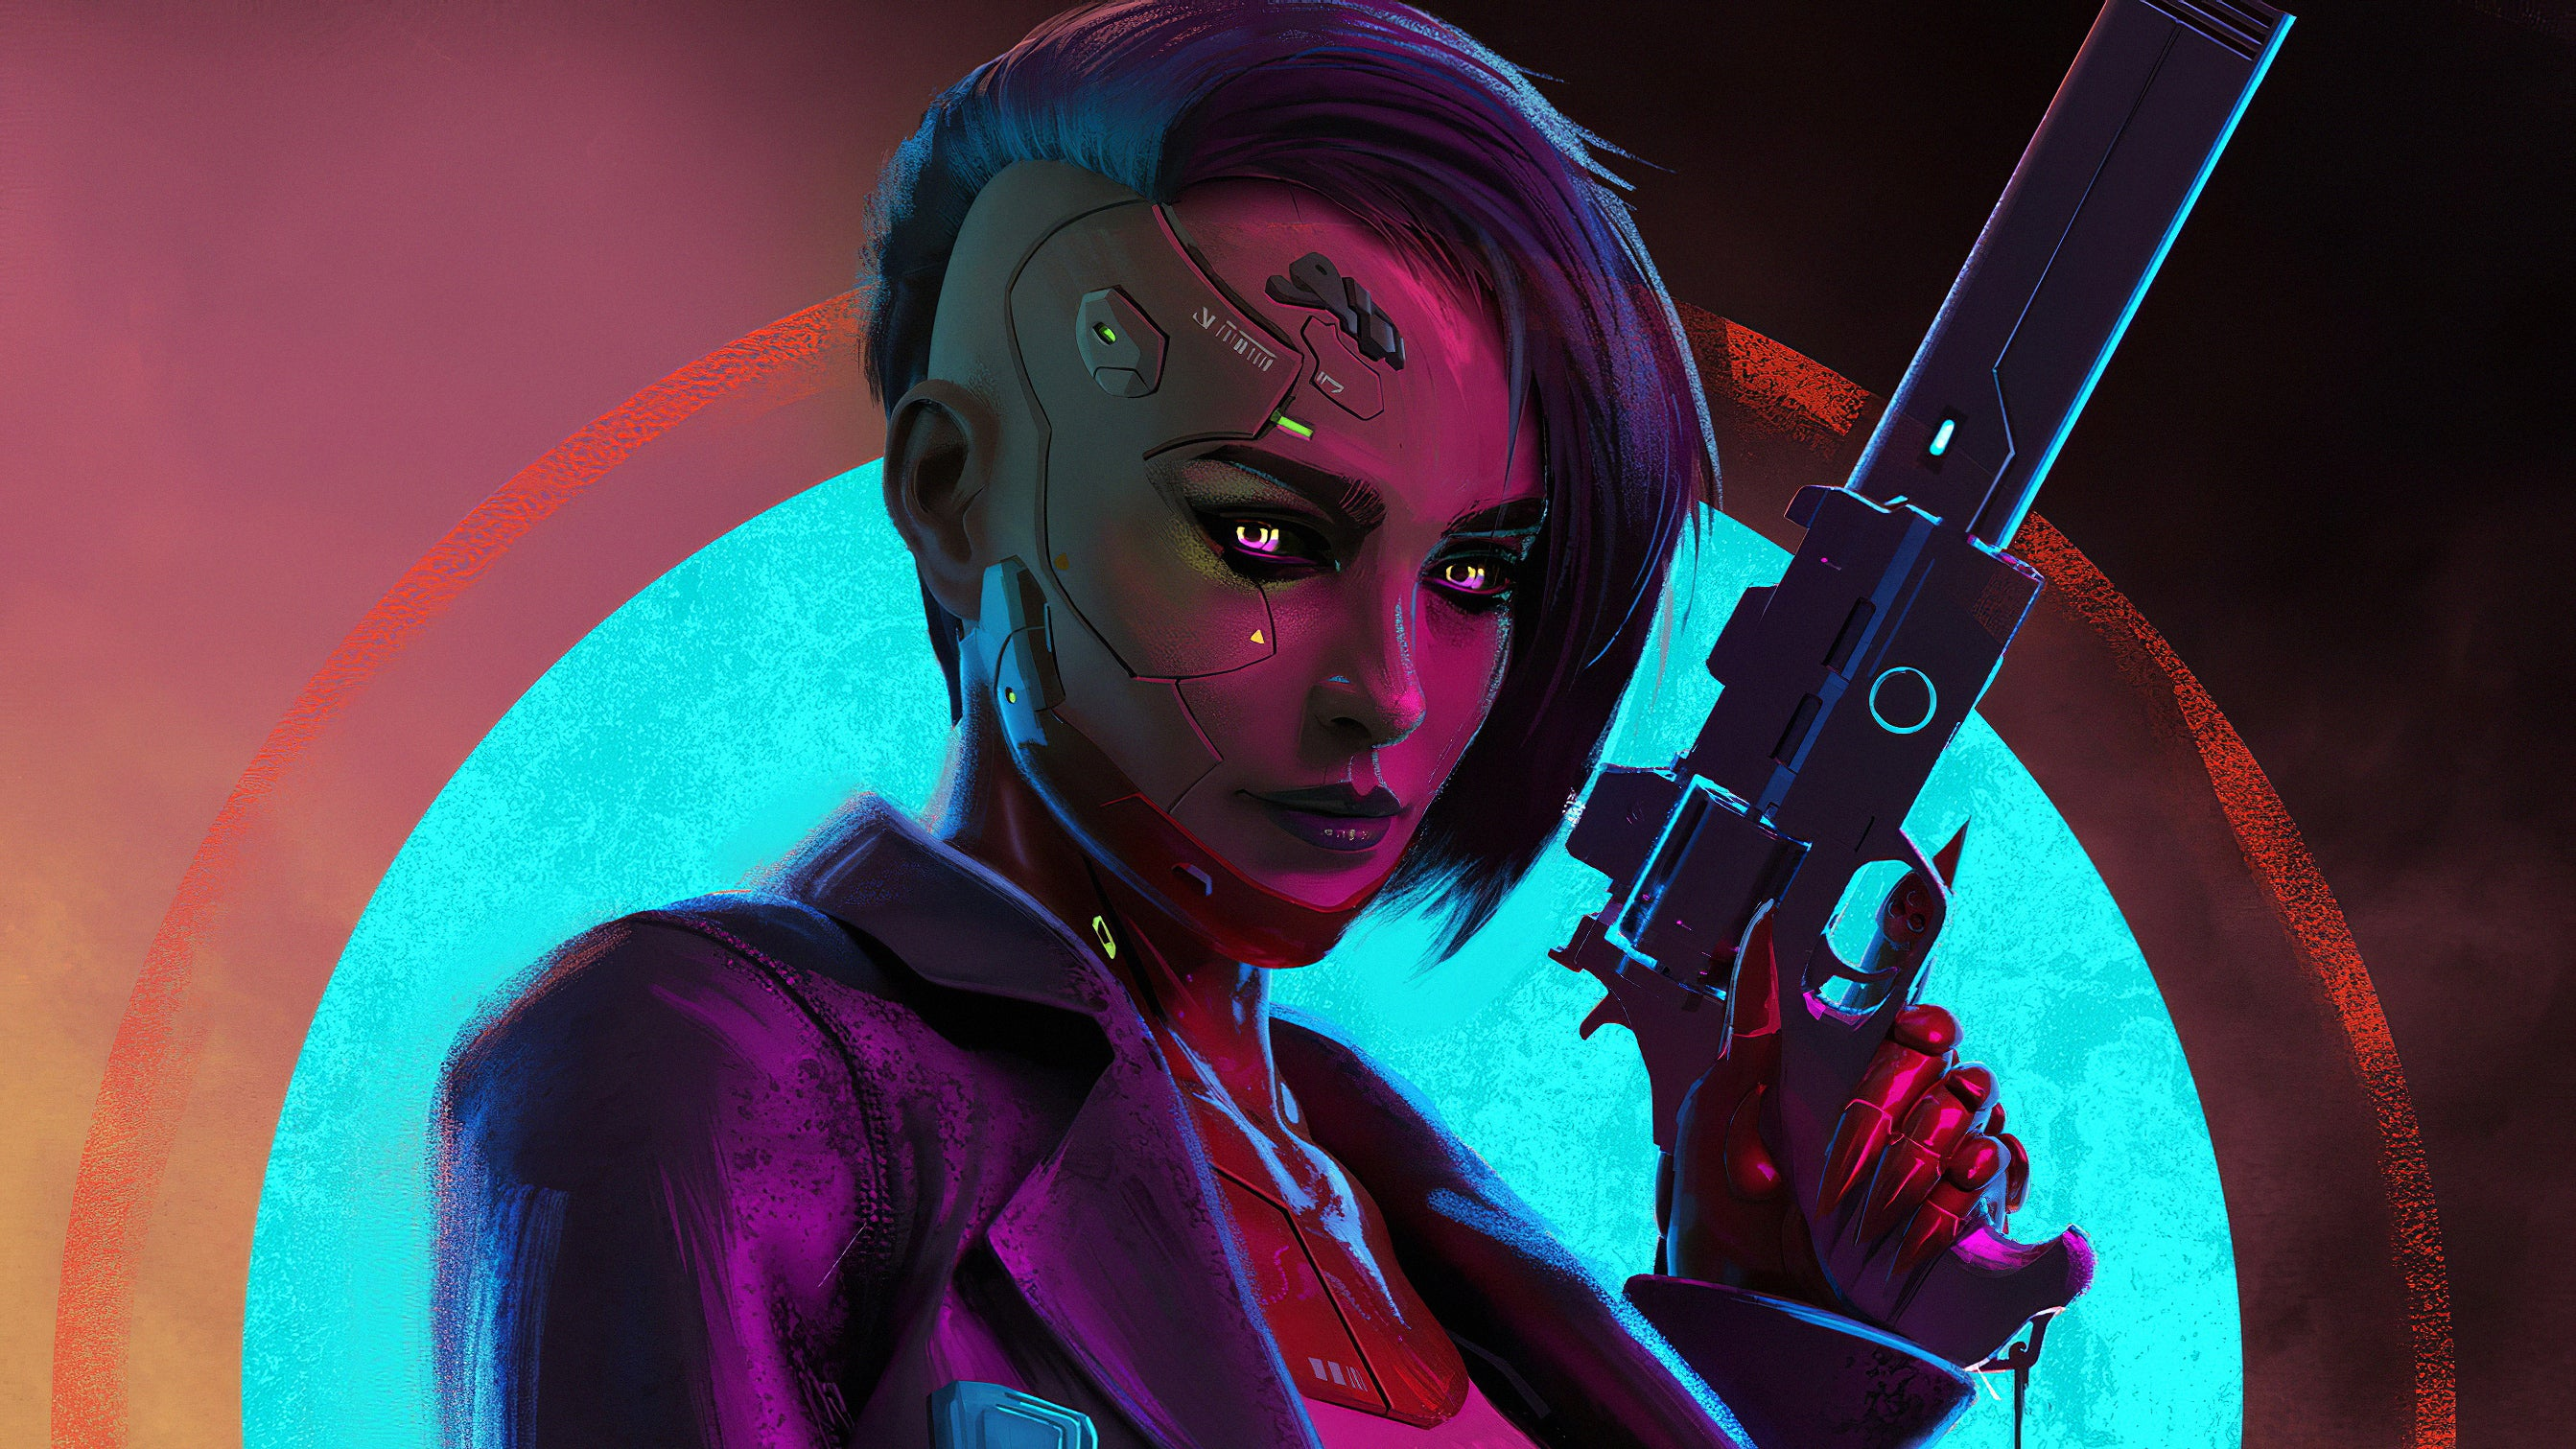 Cyberpunk-girl-with-gun-wallpaper.jpg